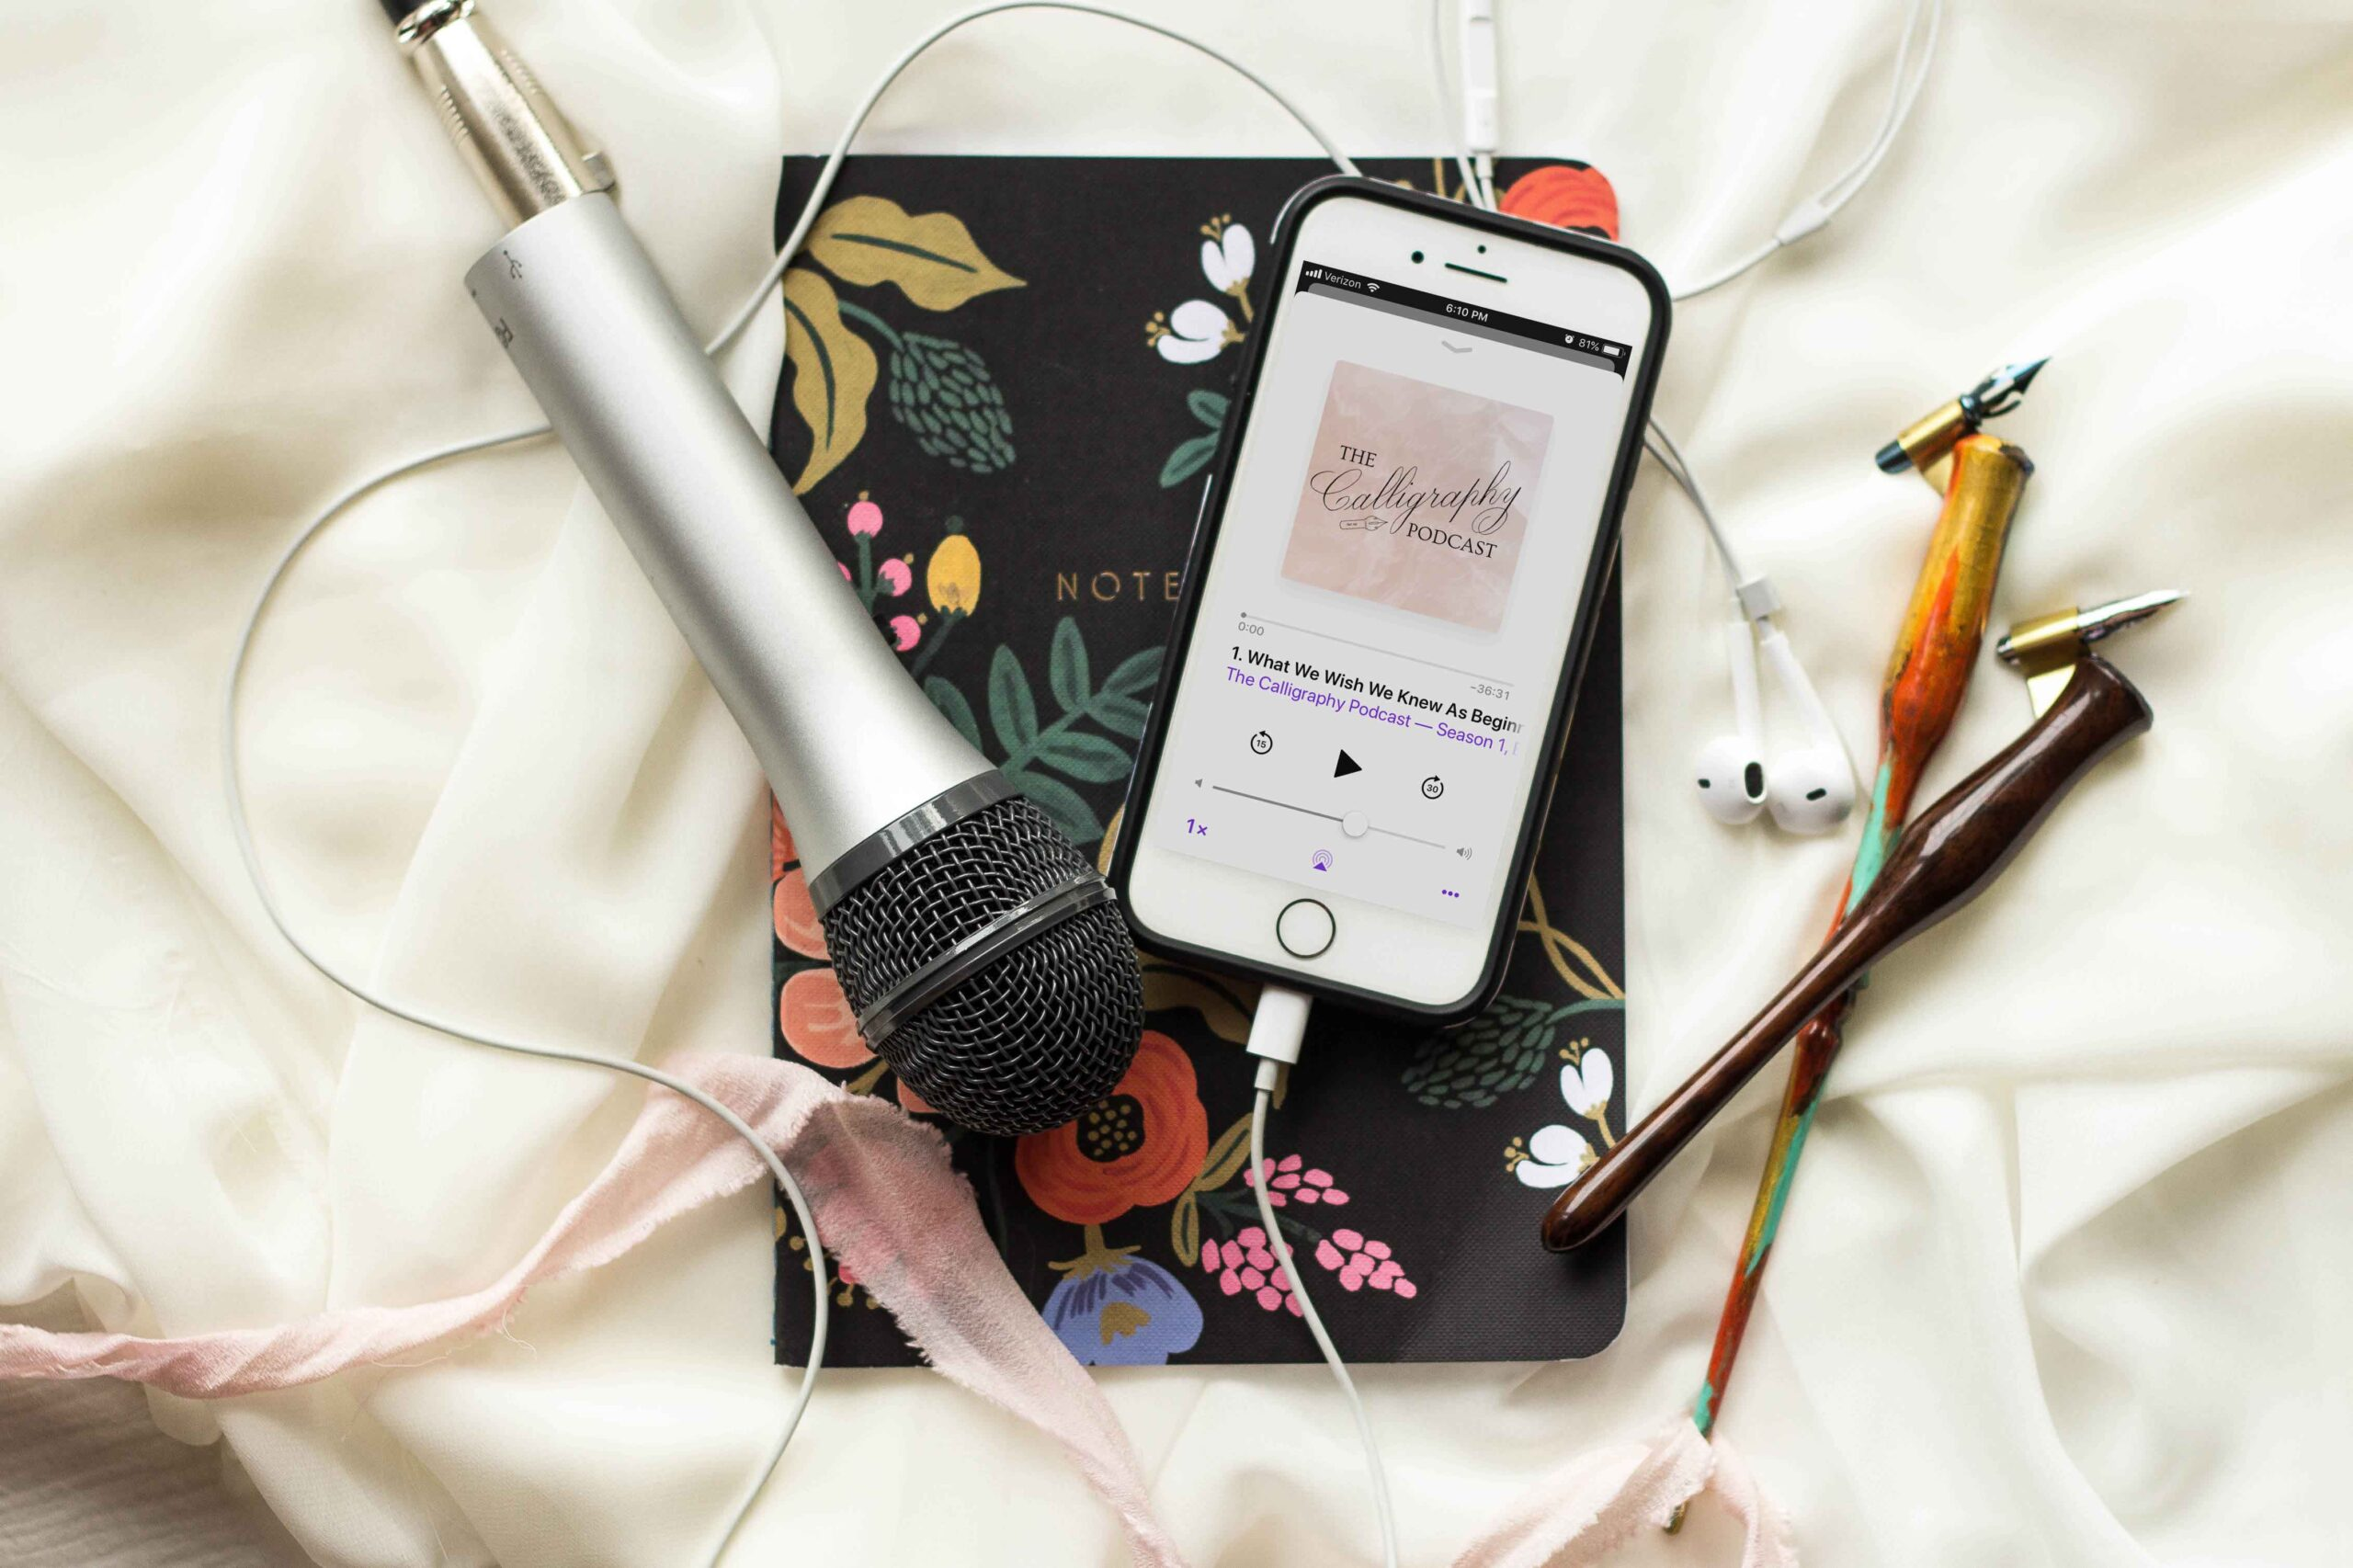 Allocco Design Norfolk, VA Calligraphy | The Calligraphy Podcast cohost